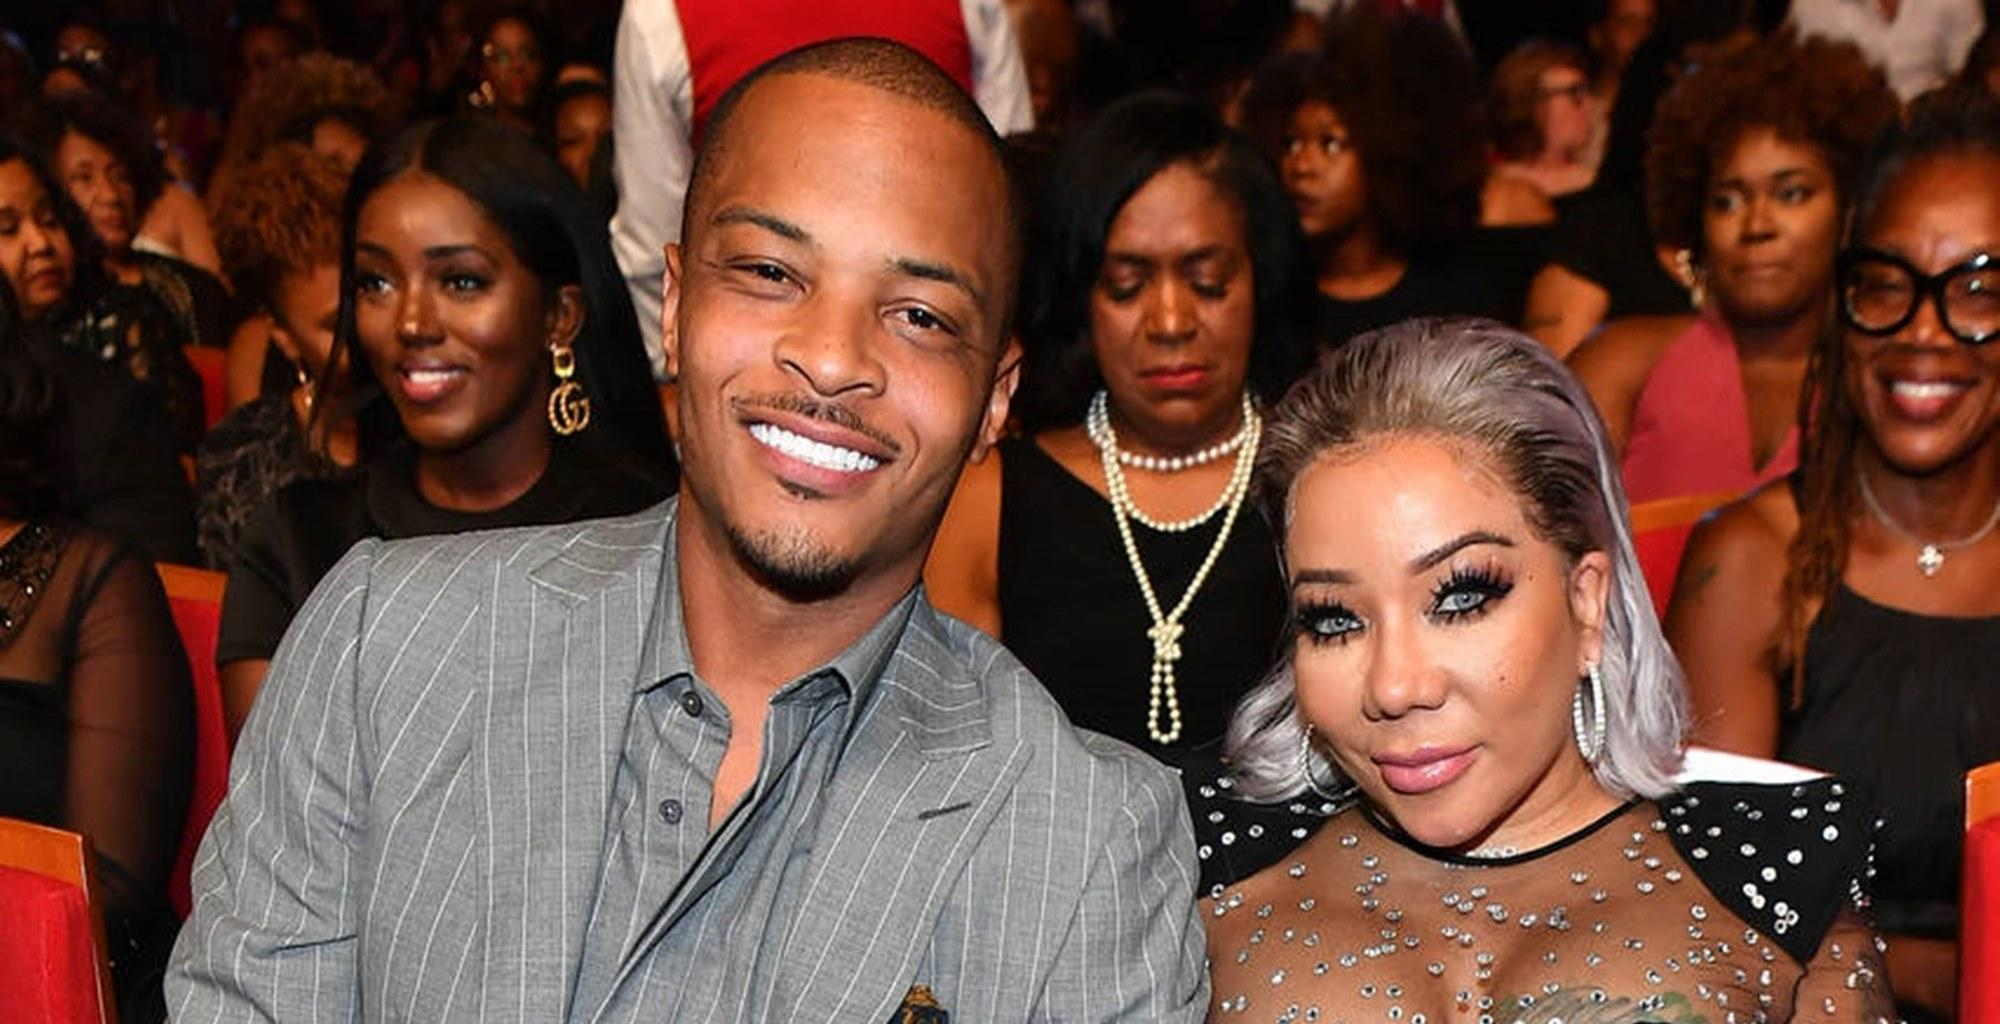 T.I. Is Mocked For Looking Like A Grandfather In This Video With Wife Tiny Harris